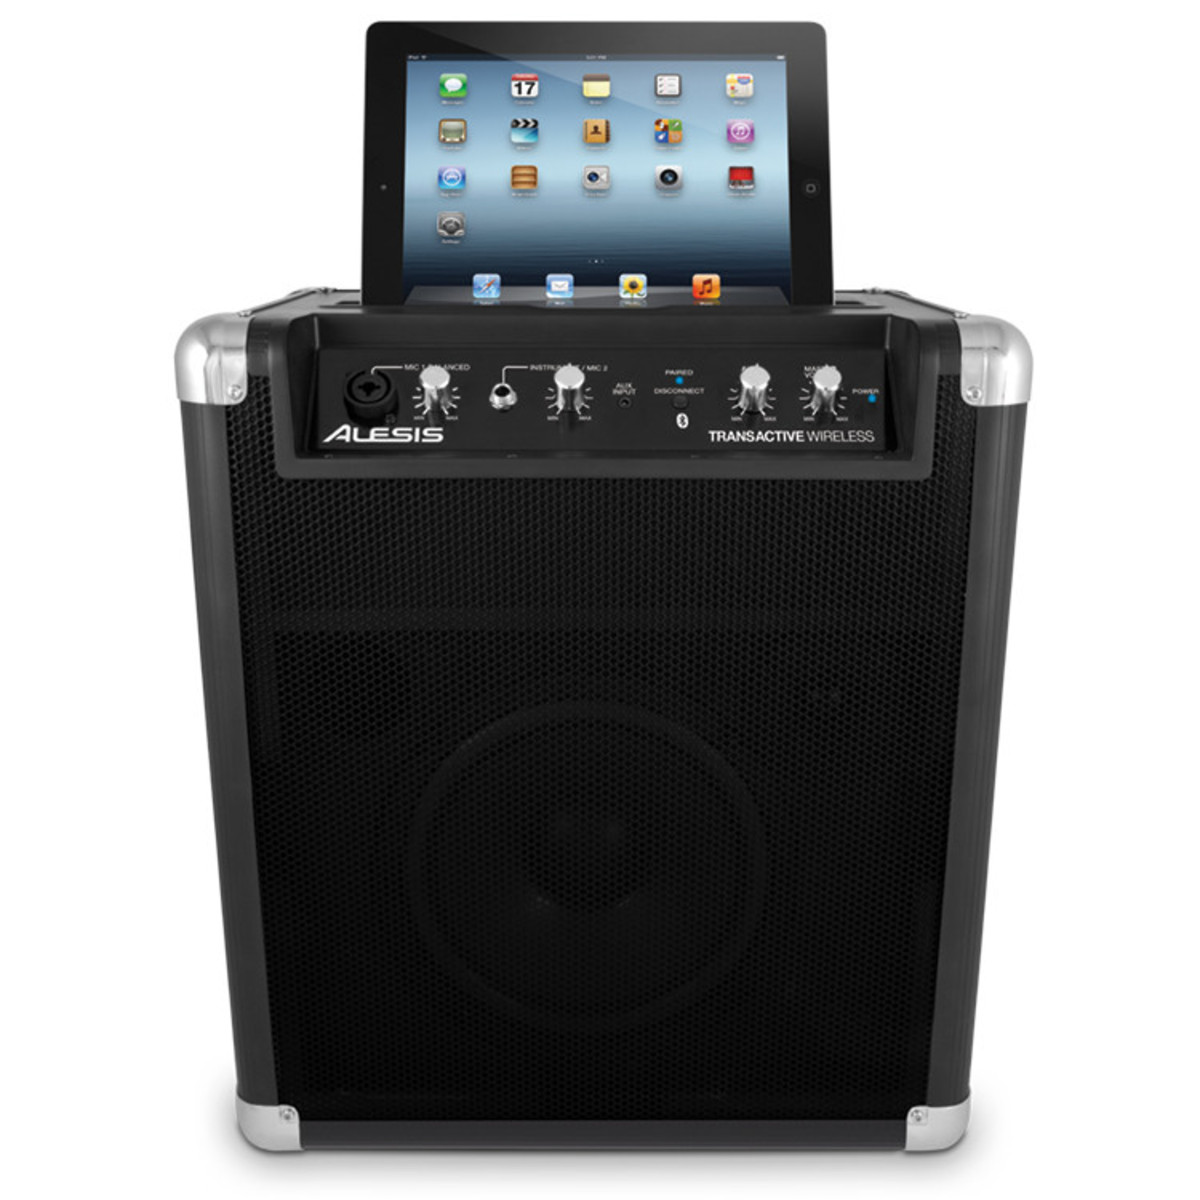 Rs Audio Que 7ec together with Dm Lite Kit likewise Fender Font likewise New Mixers That Integrate Ipads further What Audio Cable Is Best. on alesis sound system